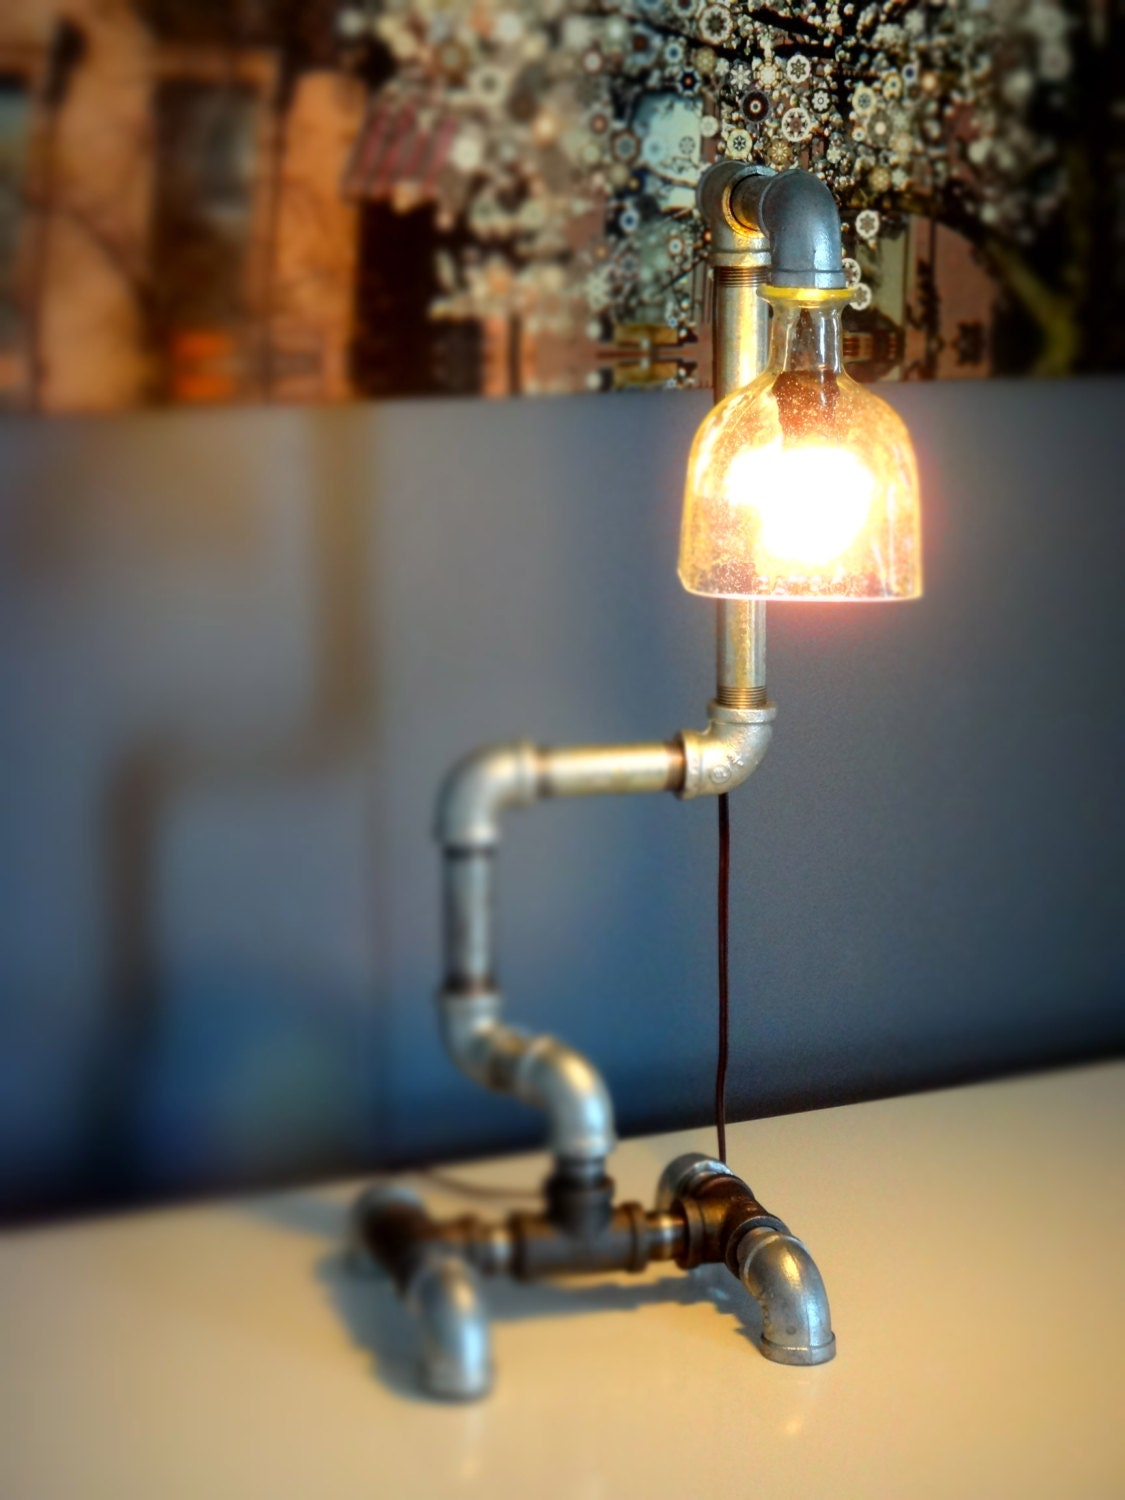 Industrial pipe lamp patron tequila bottle steel pipe table for Industrial pipe light socket